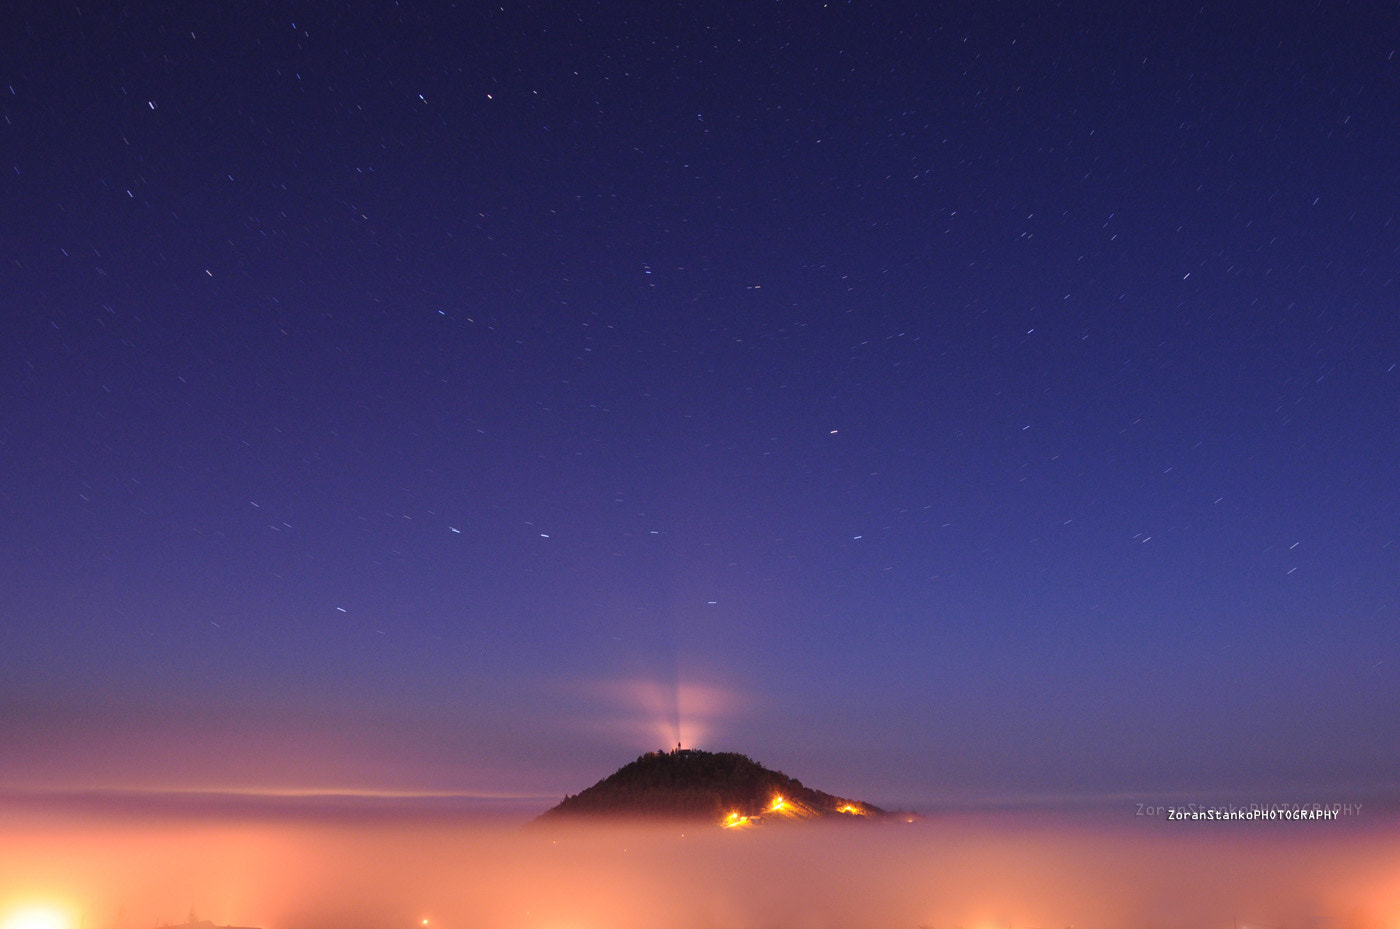 Photograph Above the 'sea of fog' by Zoran Stanko on 500px